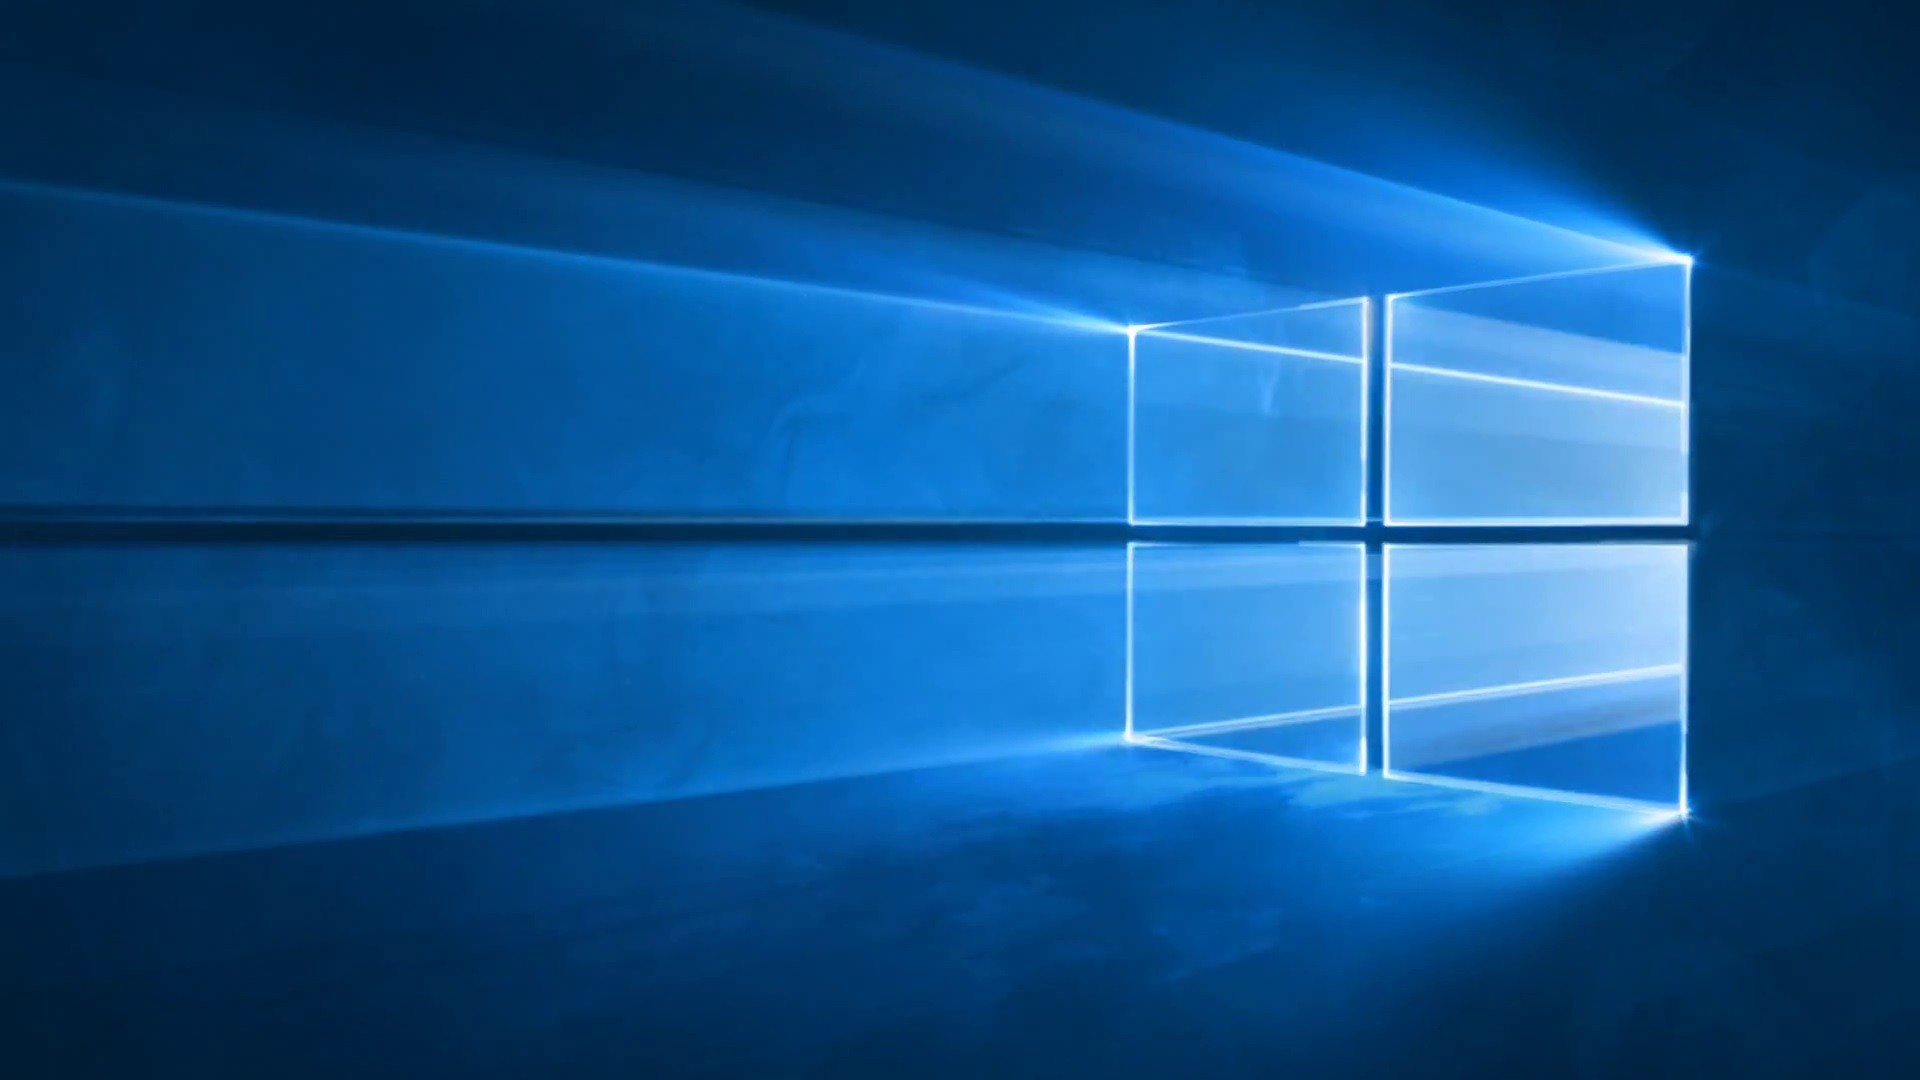 Microsoft Reveals The Official Windows 10 Wallpaper